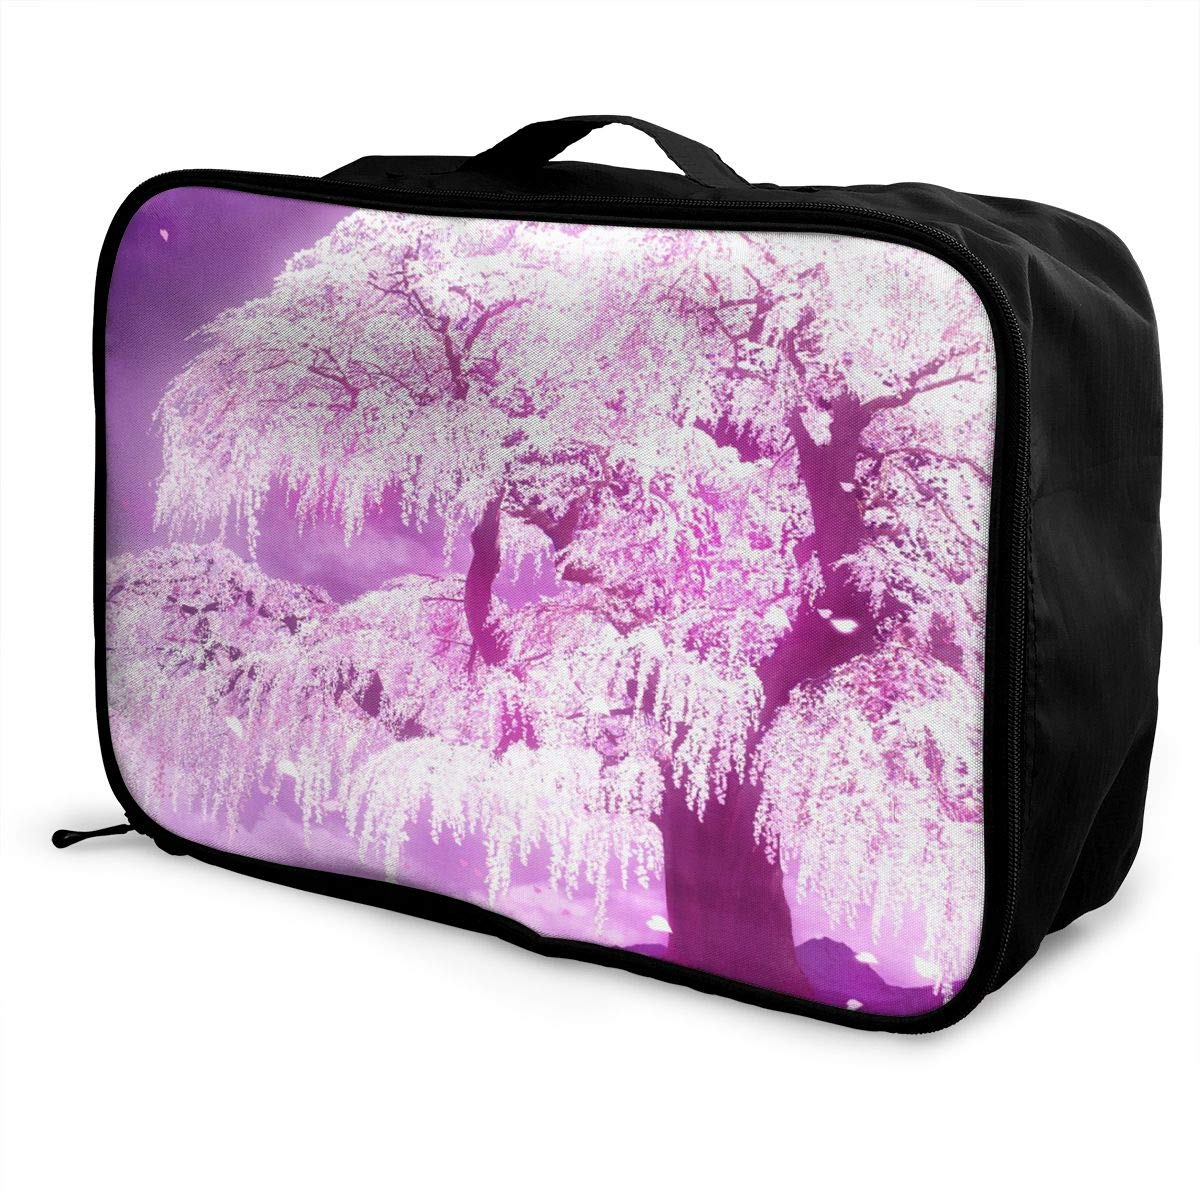 Travel Luggage Duffle Bag Lightweight Portable Handbag Cherry Print Large Capacity Waterproof Foldable Storage Tote